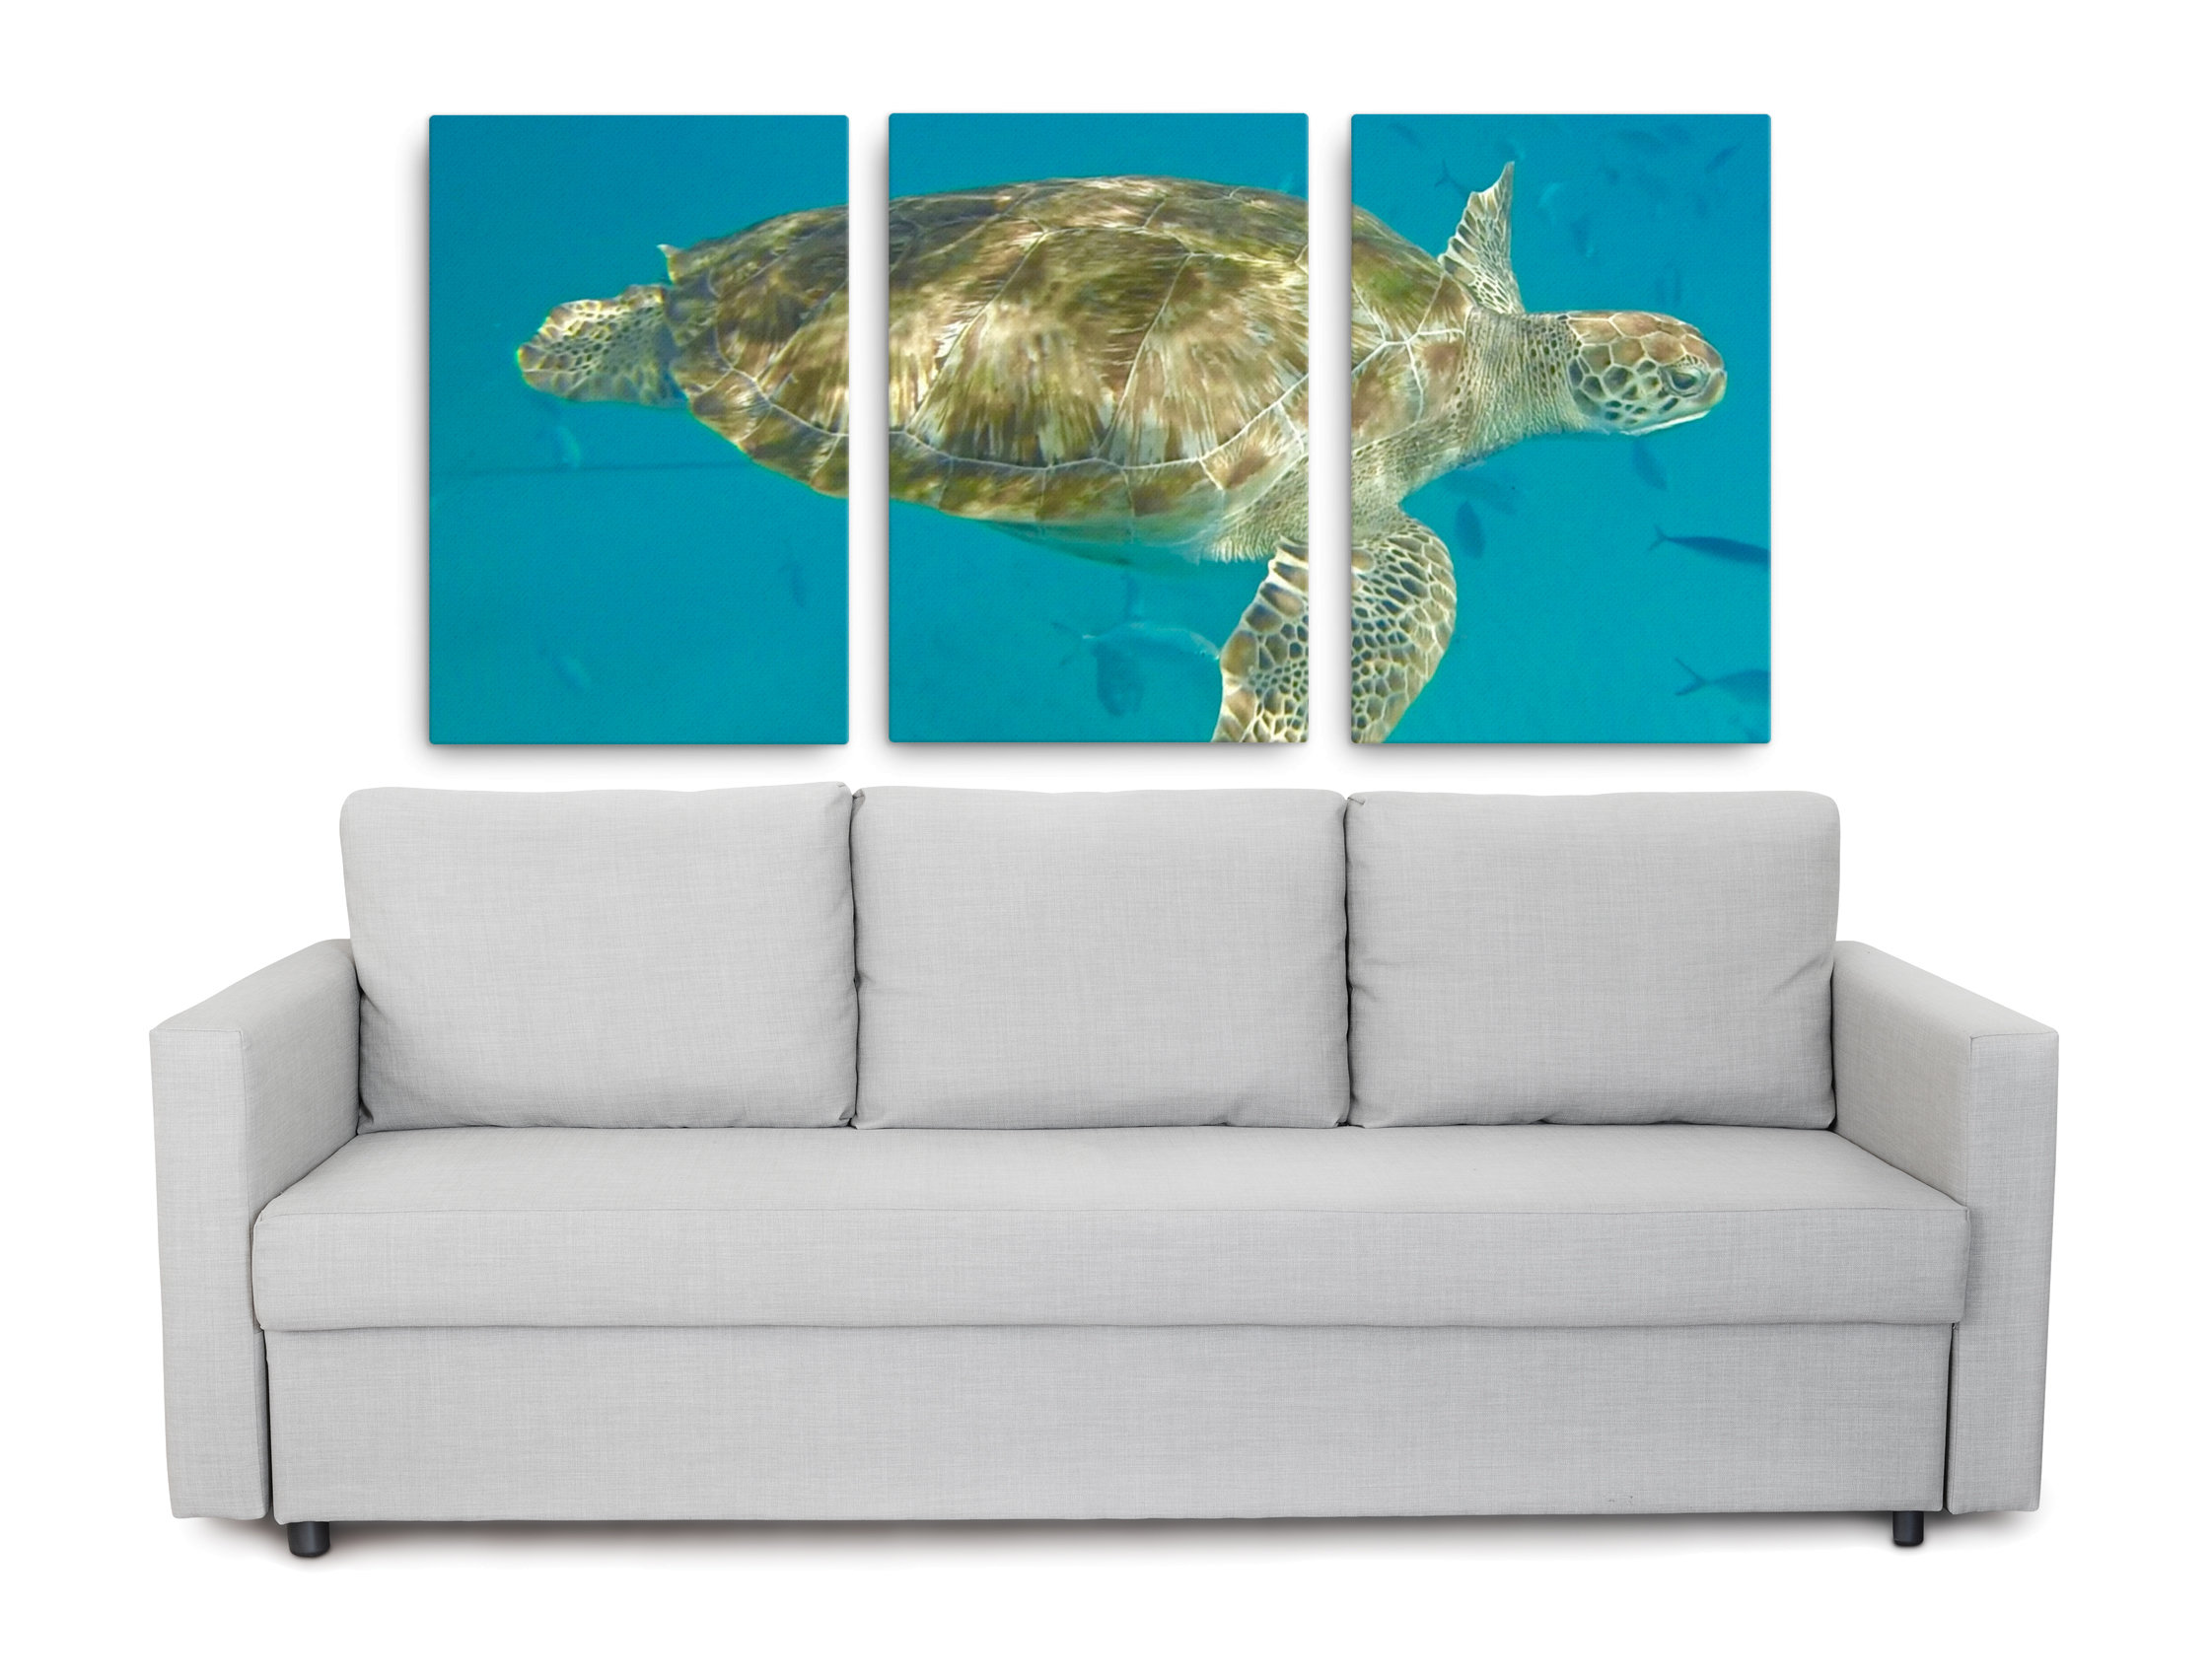 Product picture of sea turtle wall art in the form of a triptych canvas print of an underwater sea turtle picture.